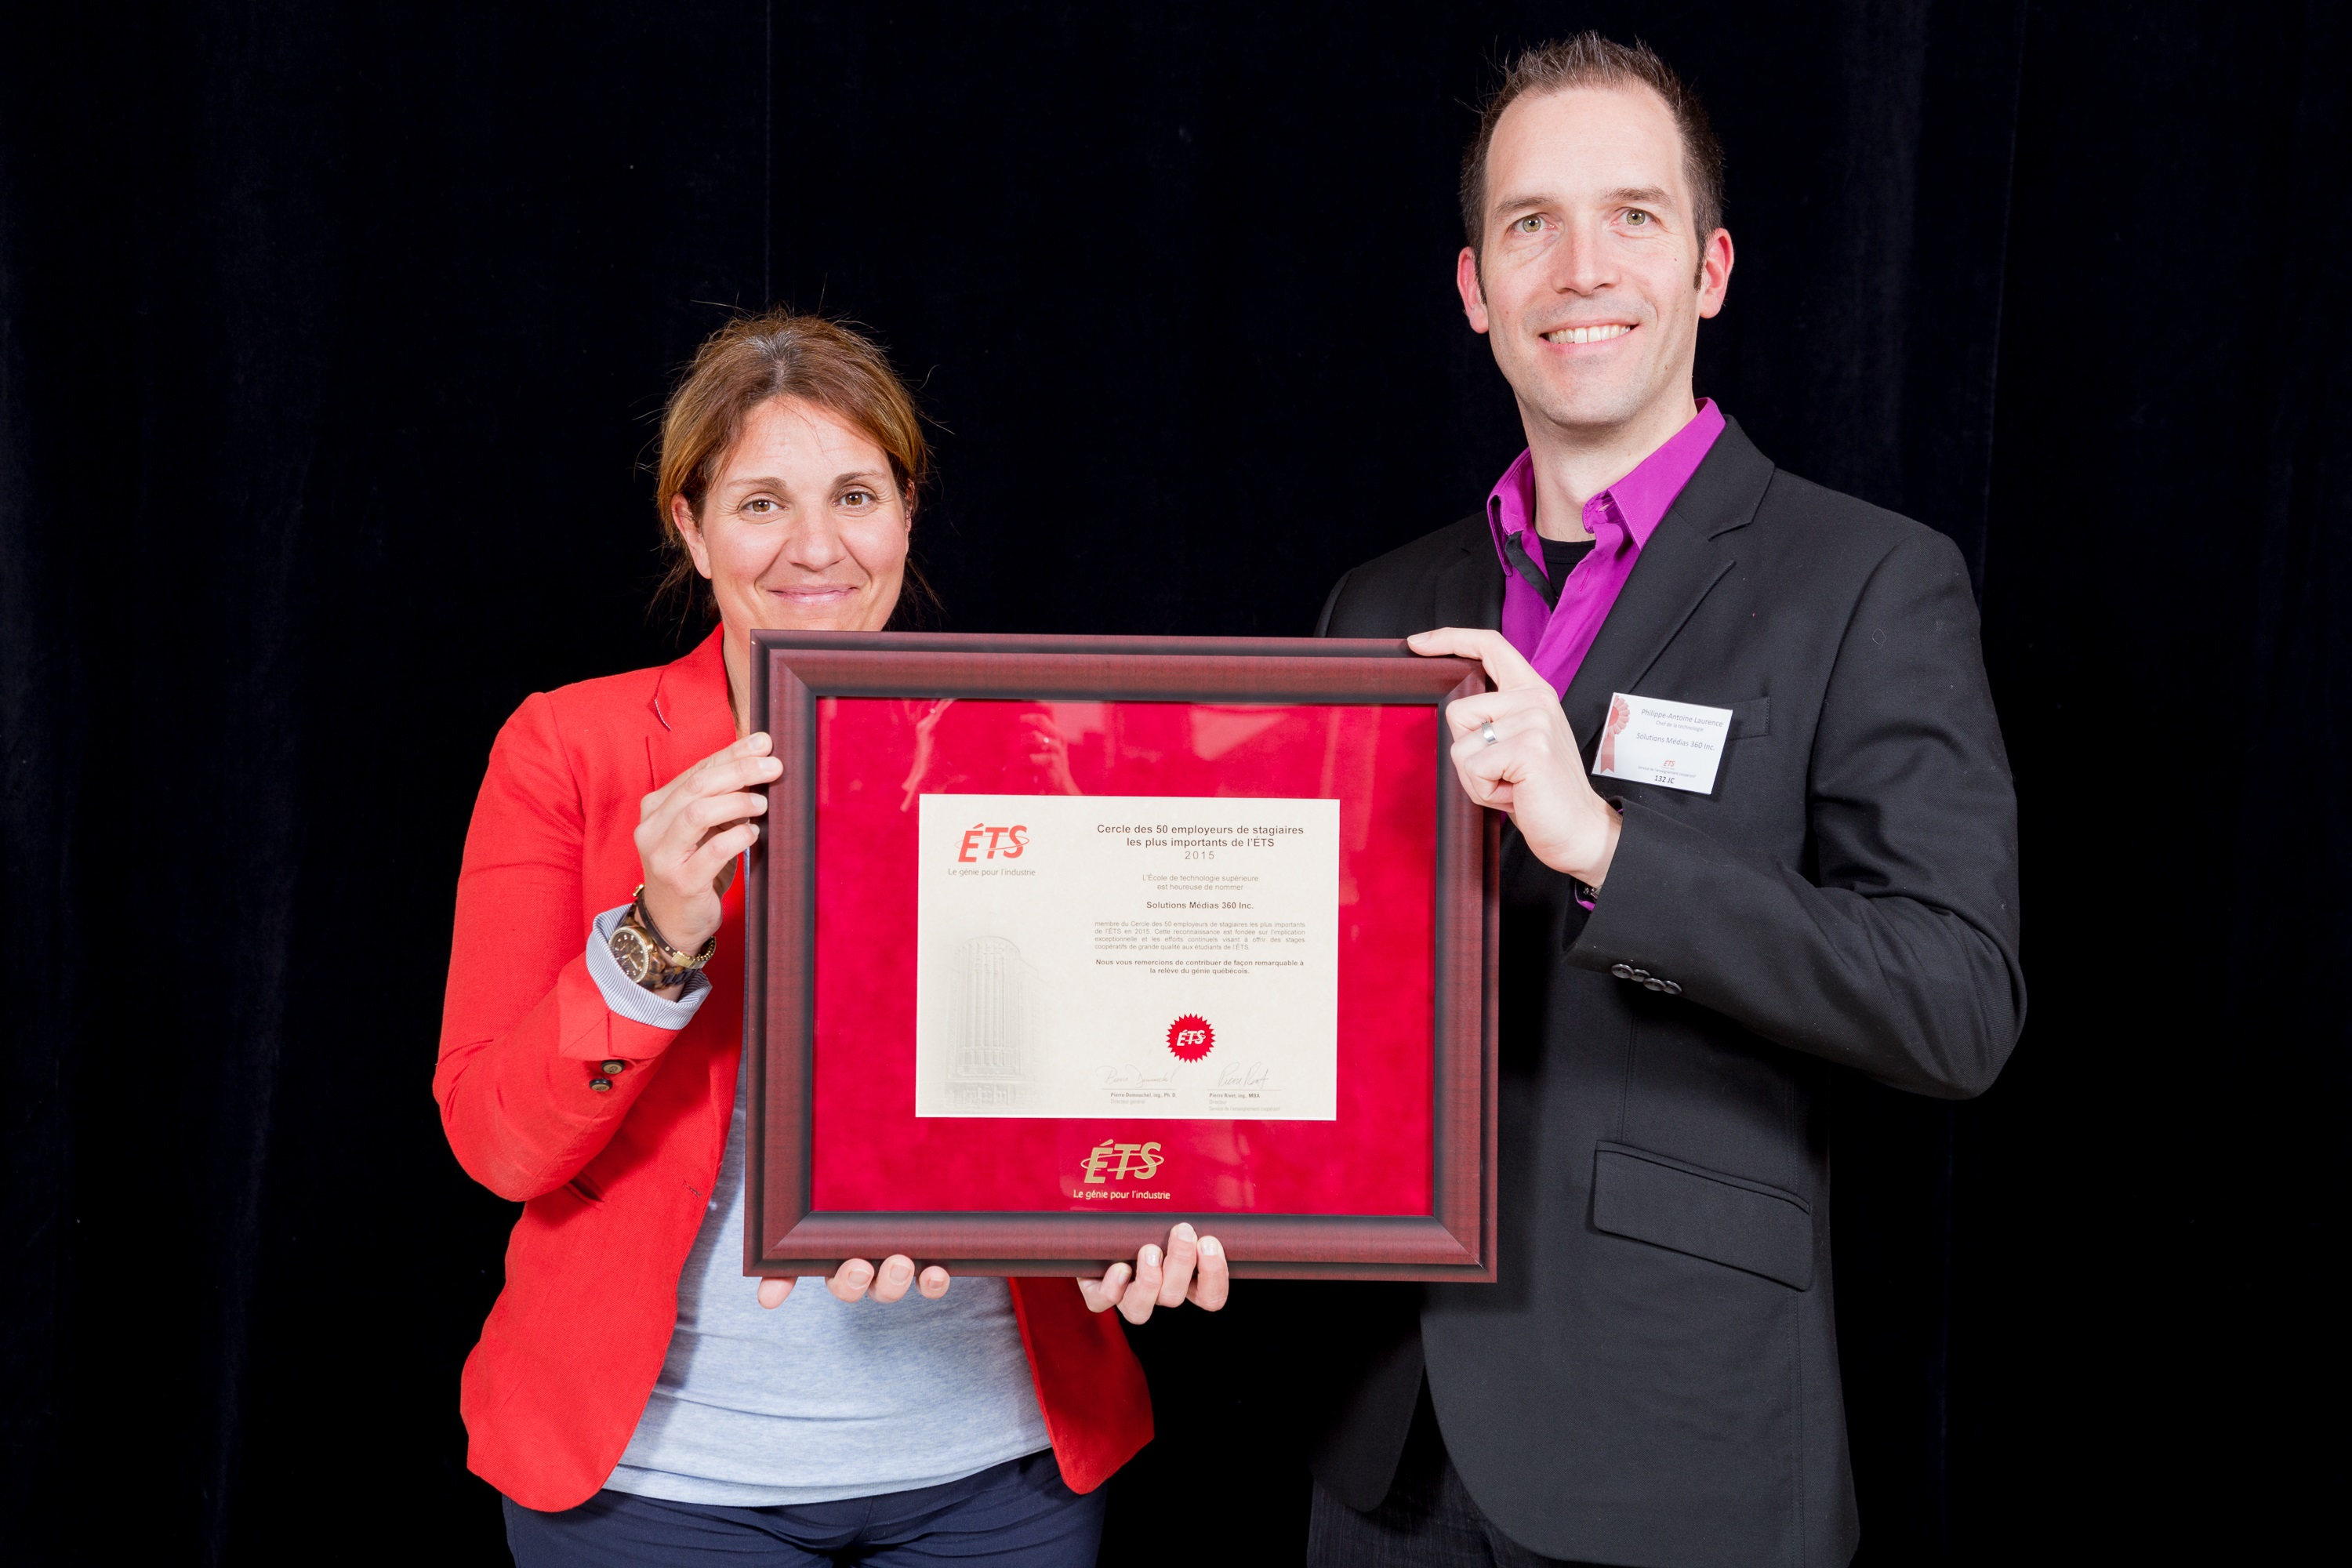 Phillipe-Antoine Laurence, Vice-President of Products and Innovation at Solutions Médias 360 who received an honorary certificate from Julie Coderre, Coordinator of Internships.